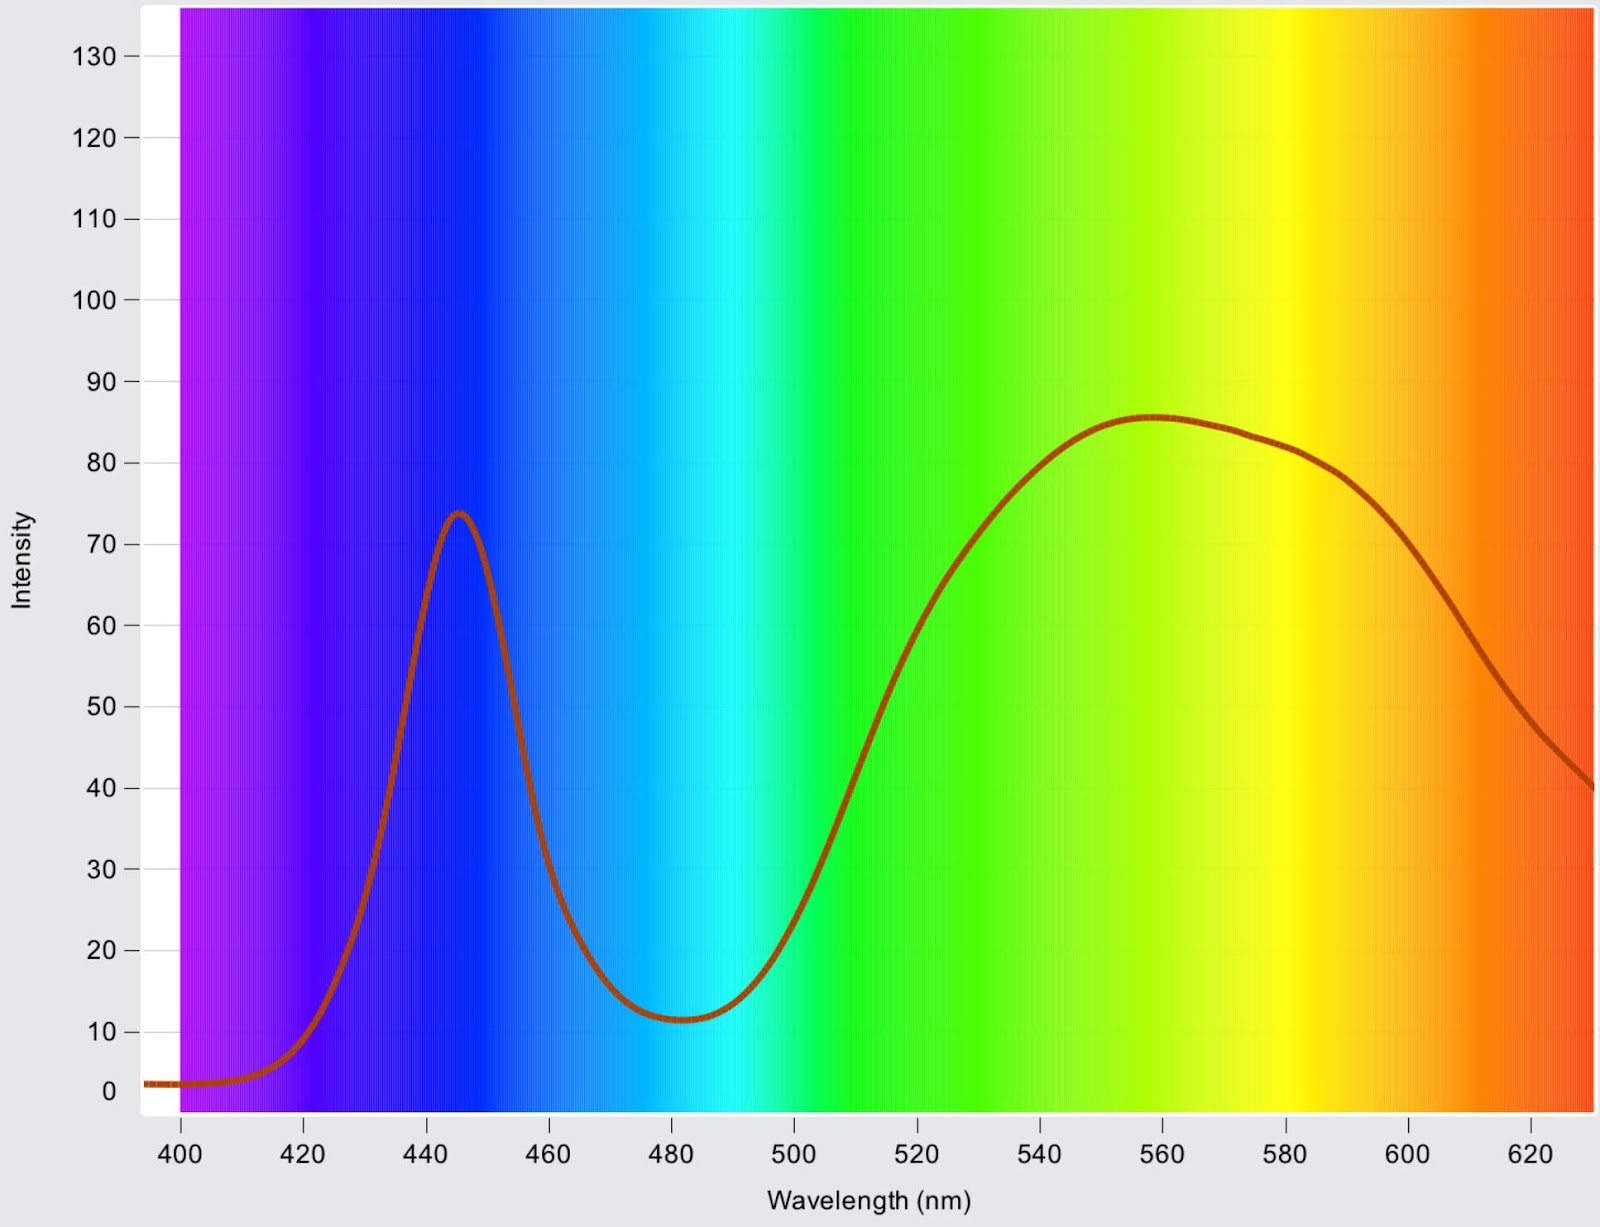 A spectrograph analysis of the Olight Baldr Pro's light output